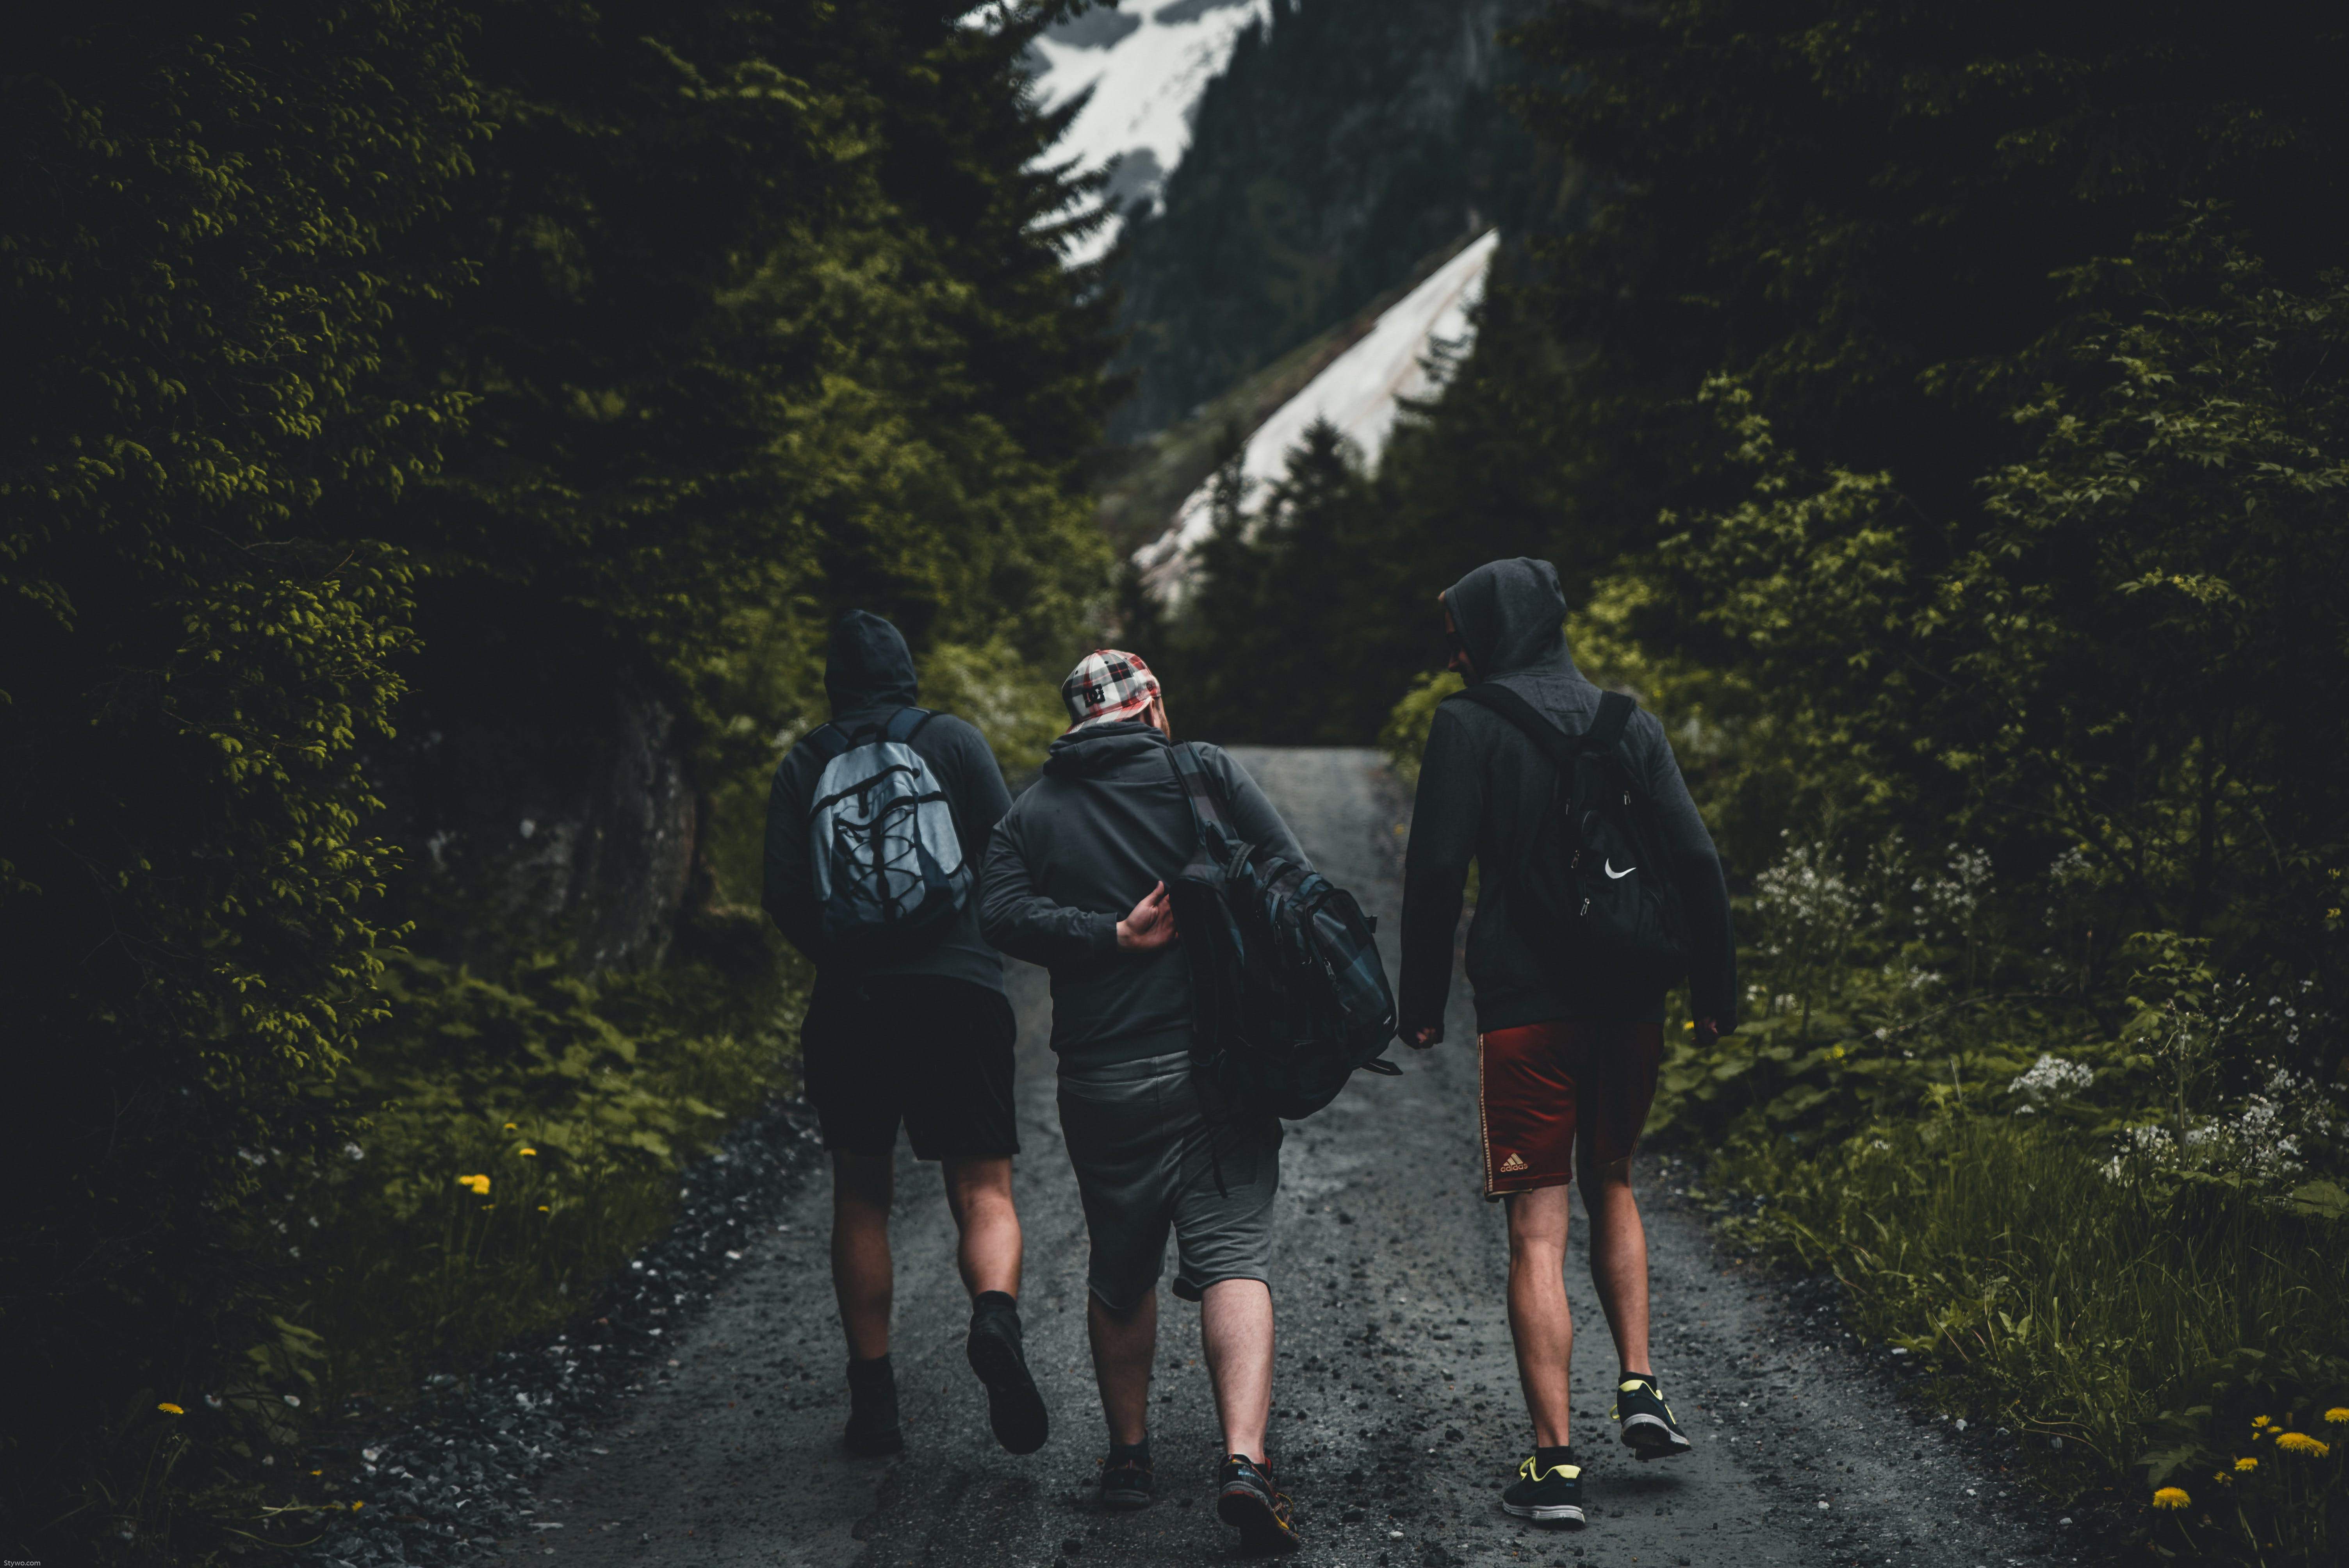 Three Men Walking on Road Between Tall Trees